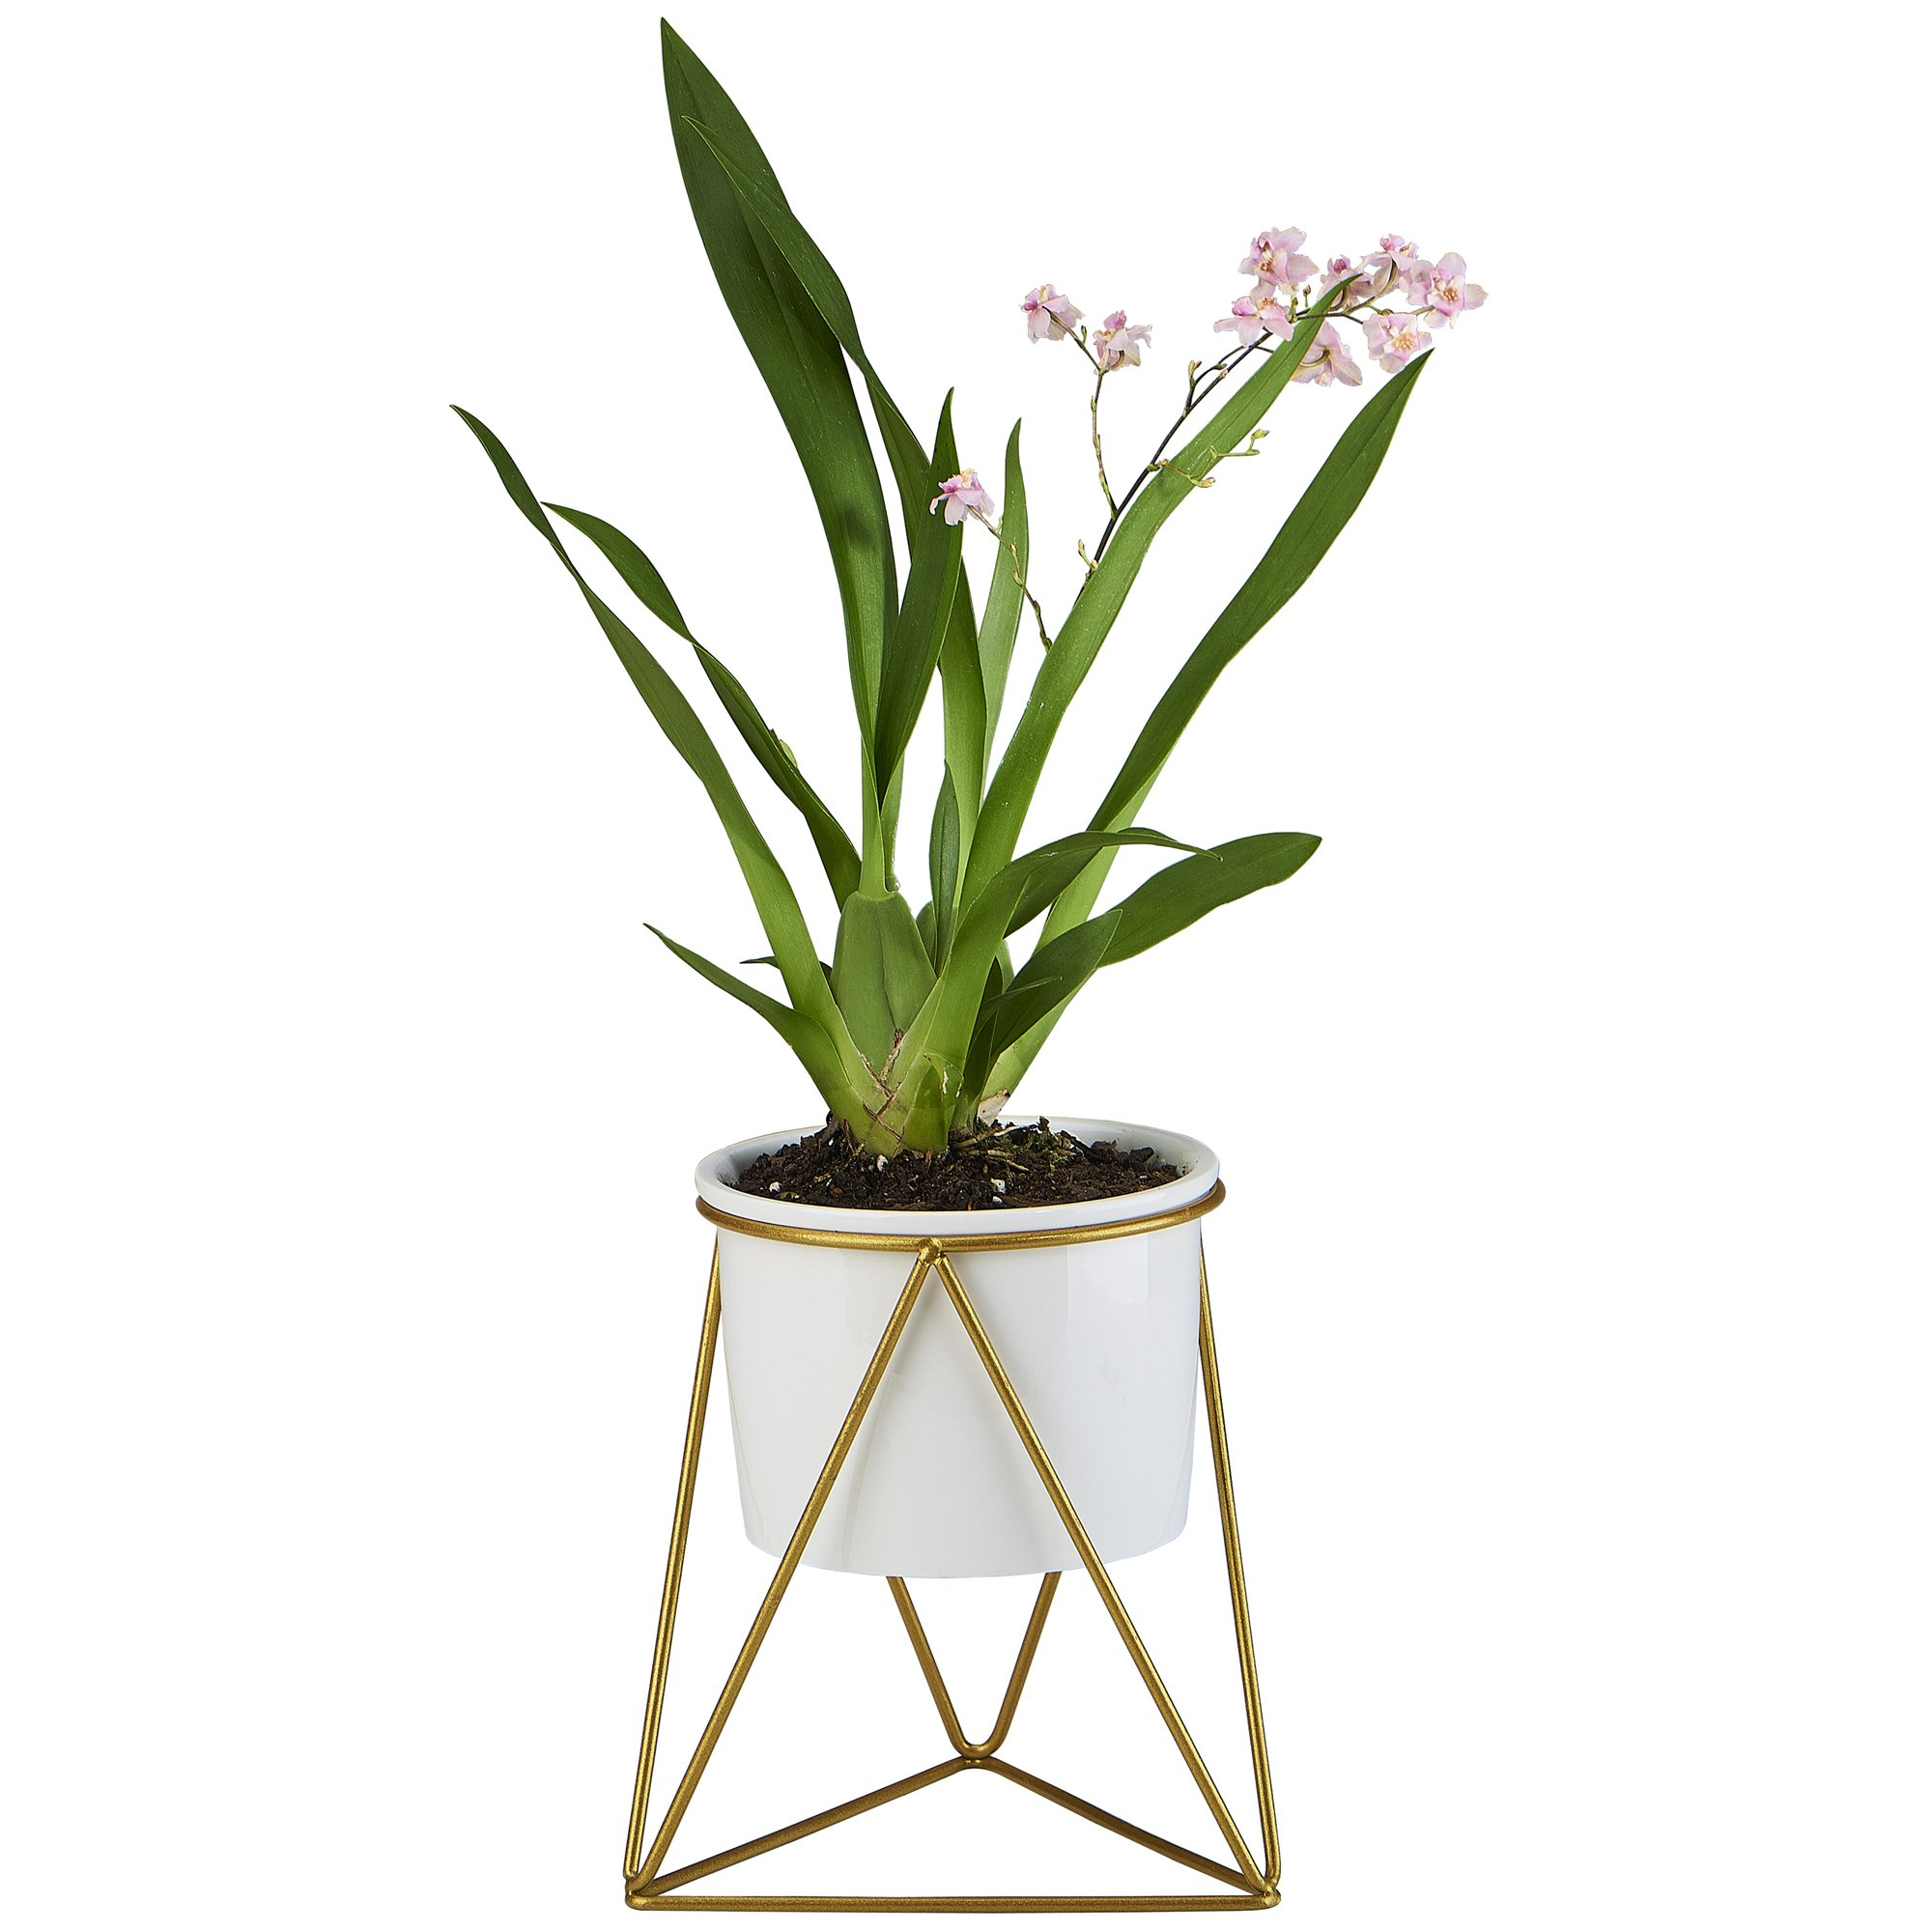 flowerplus Planter Pot Indoor, 4.33 Inch White Ceramic Medium Succulent Cactus Flower Plant Round Bowl with Metal Stand Holder and Plants Sign for Indoors Outdoor Home Garden Kitchen Decor (Golden) by flowerplus